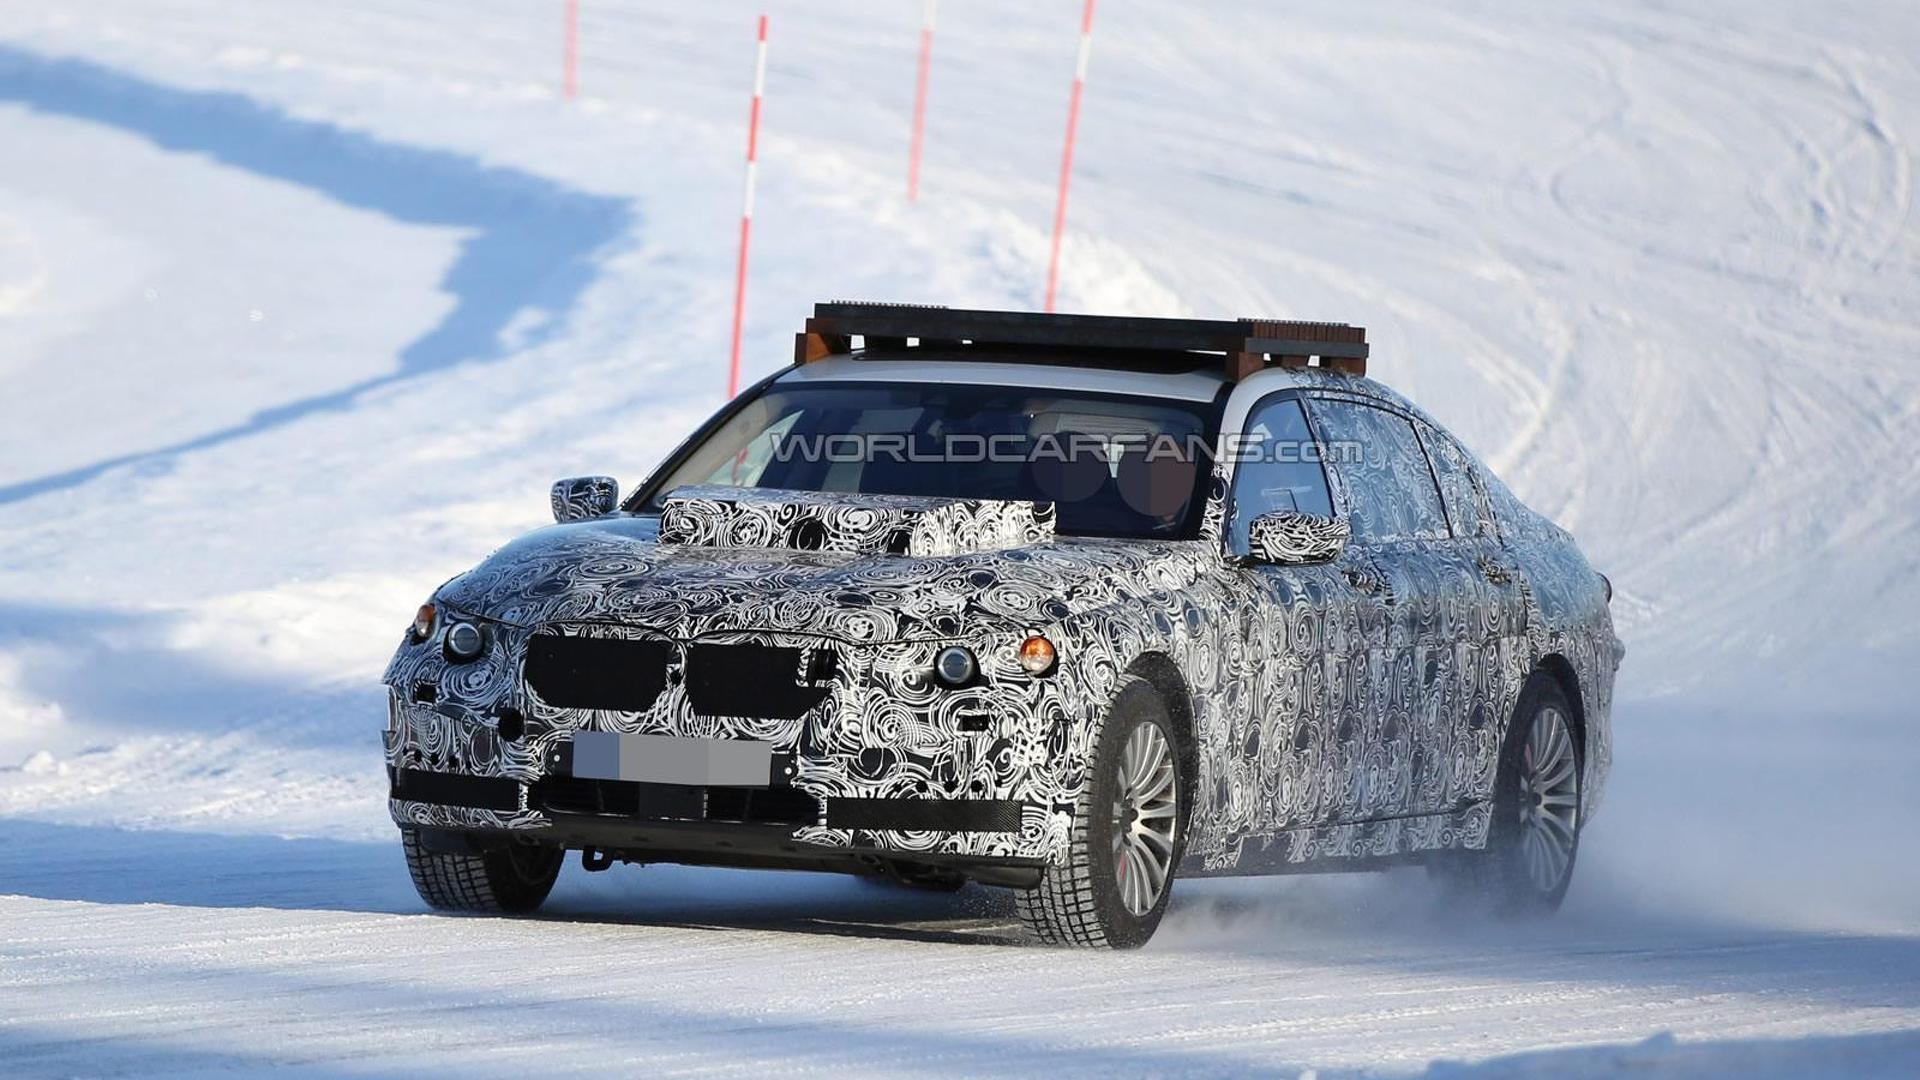 Possible BMW X7 chassis testing mule returns in an additional batch of spy images